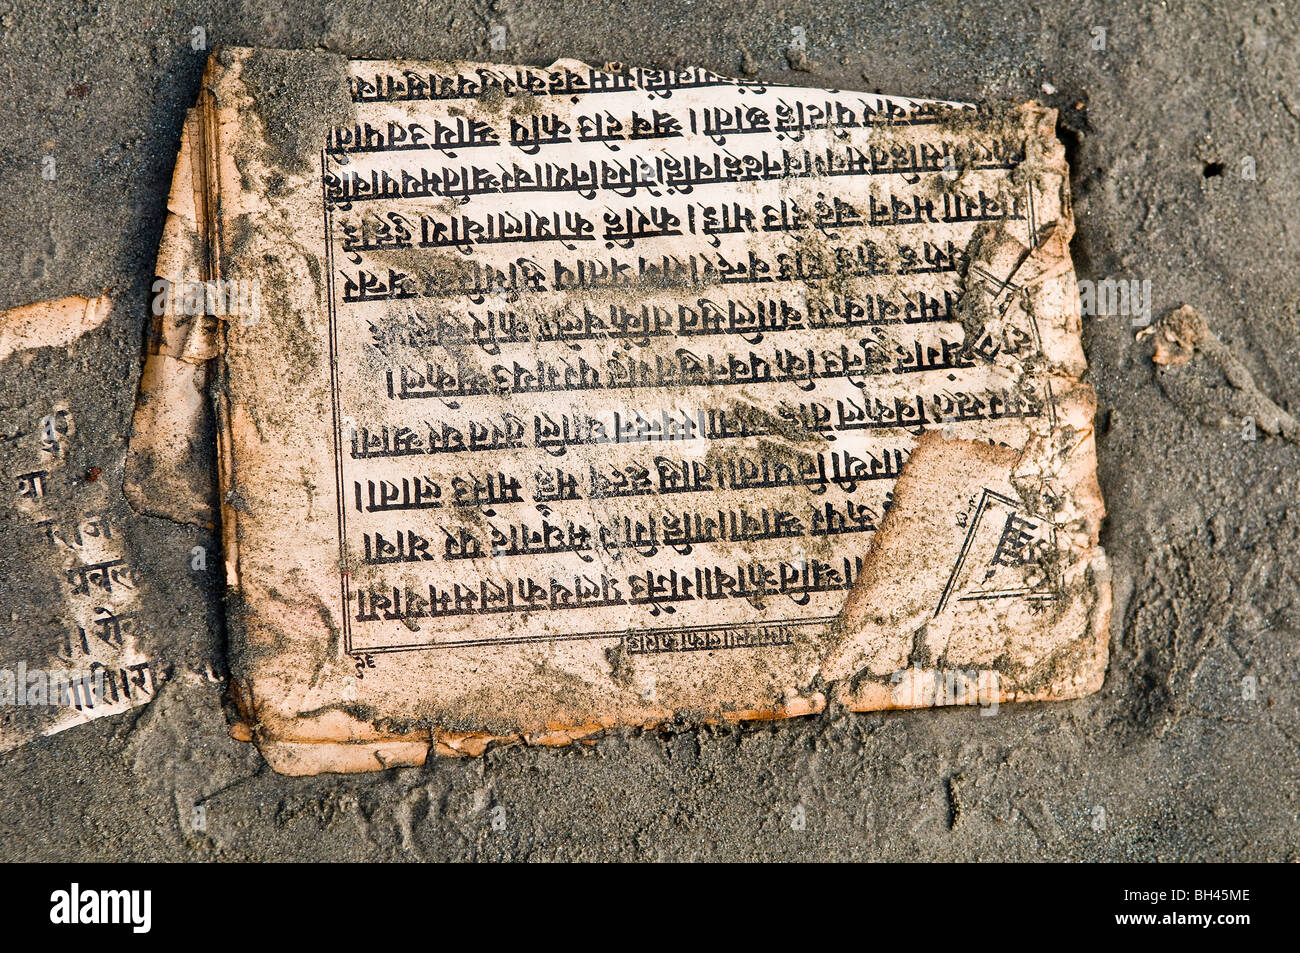 Sanskrit Of The Vedas Vs Modern Sanskrit: Vedas Stock Photos & Vedas Stock Images